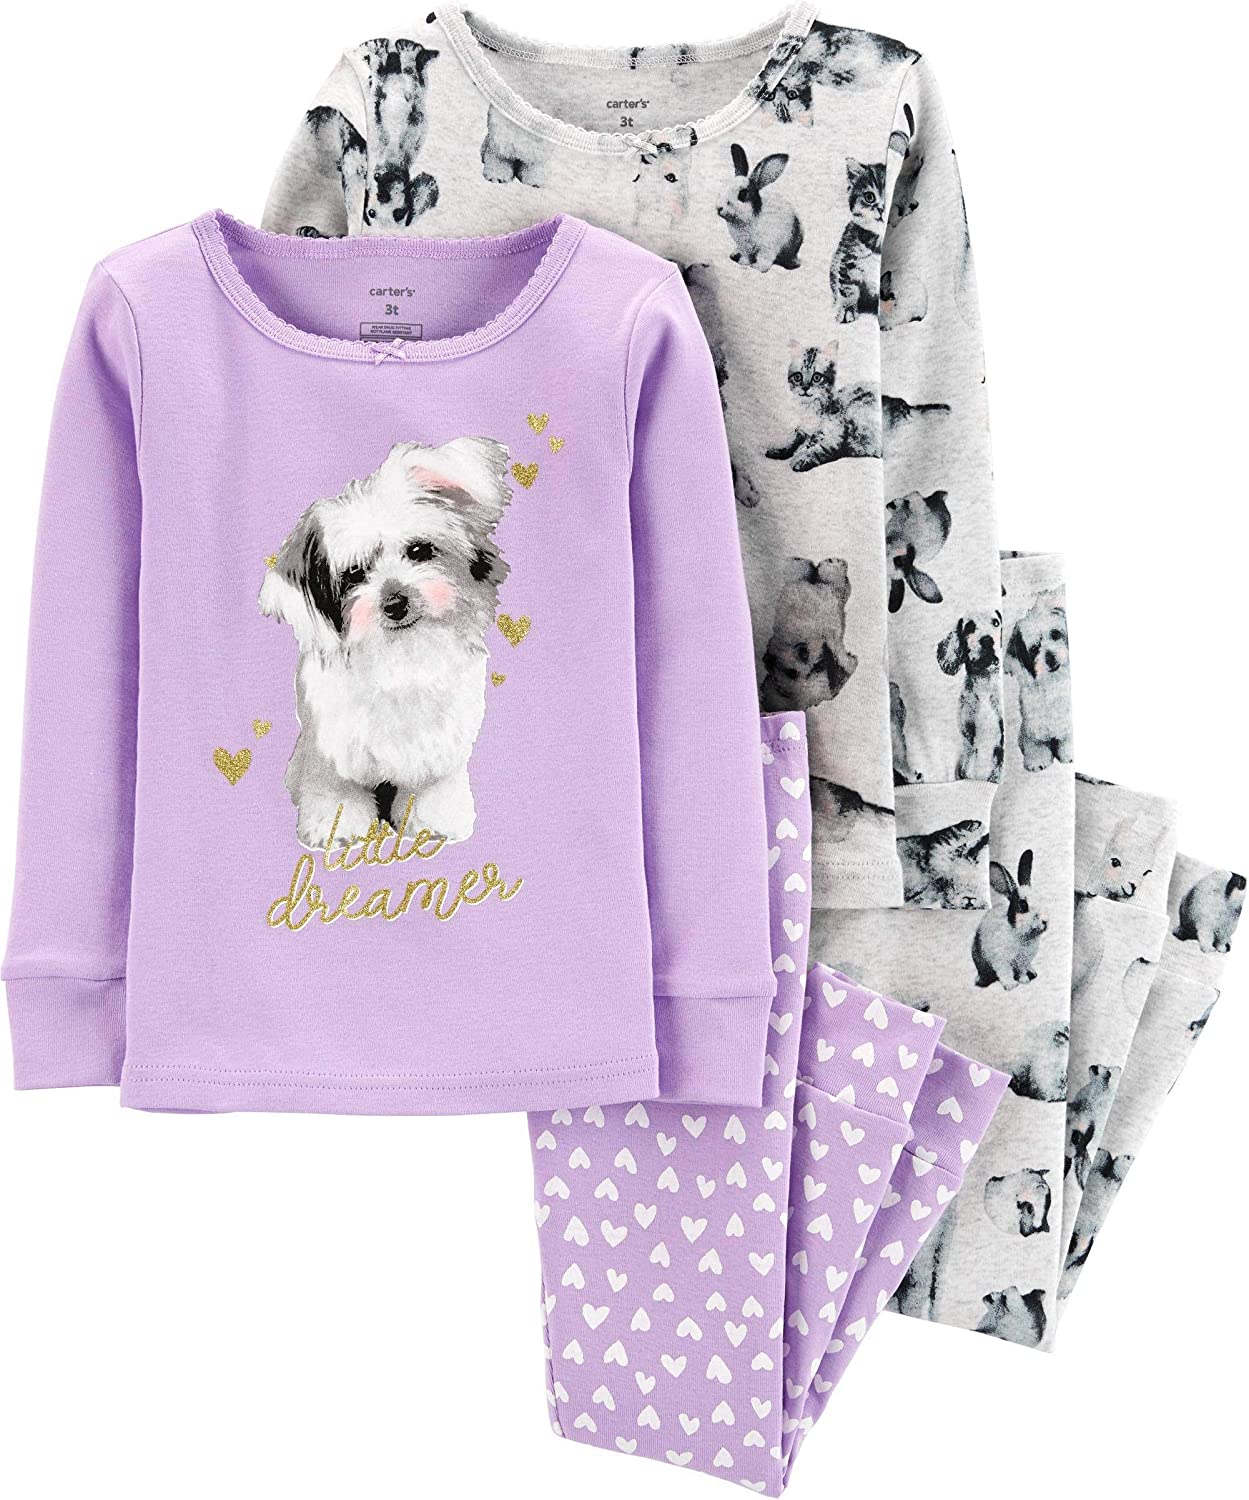 Carters Toddler and Baby Girls 4 Piece Cotton Pajama Set